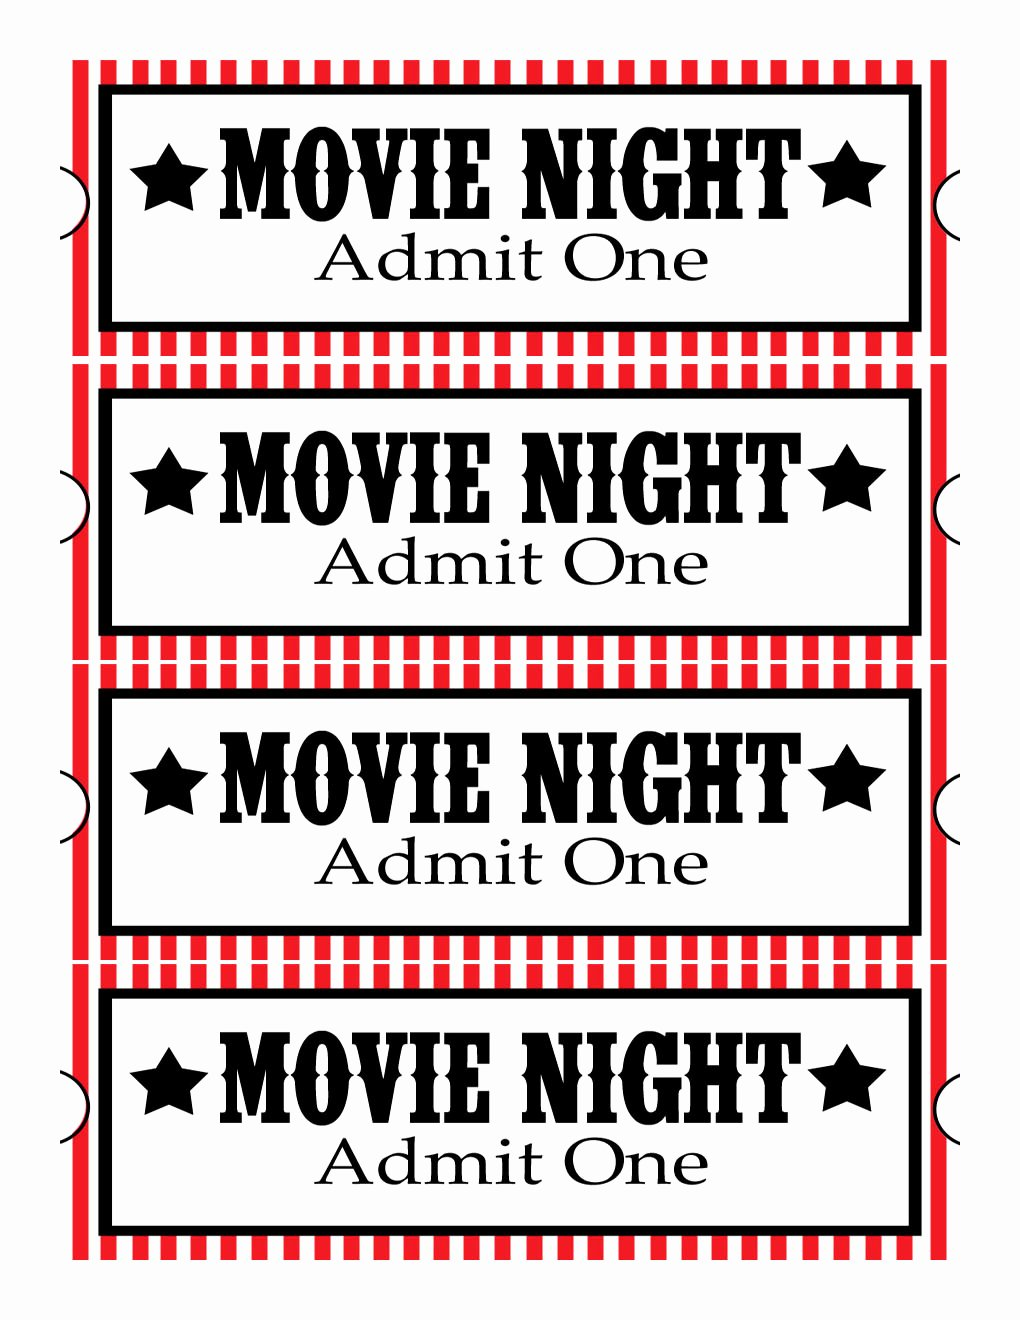 Vintage Movie Ticket Template Inspirational Sweet Daisy Designs Free Printables Home Movie theatre Night